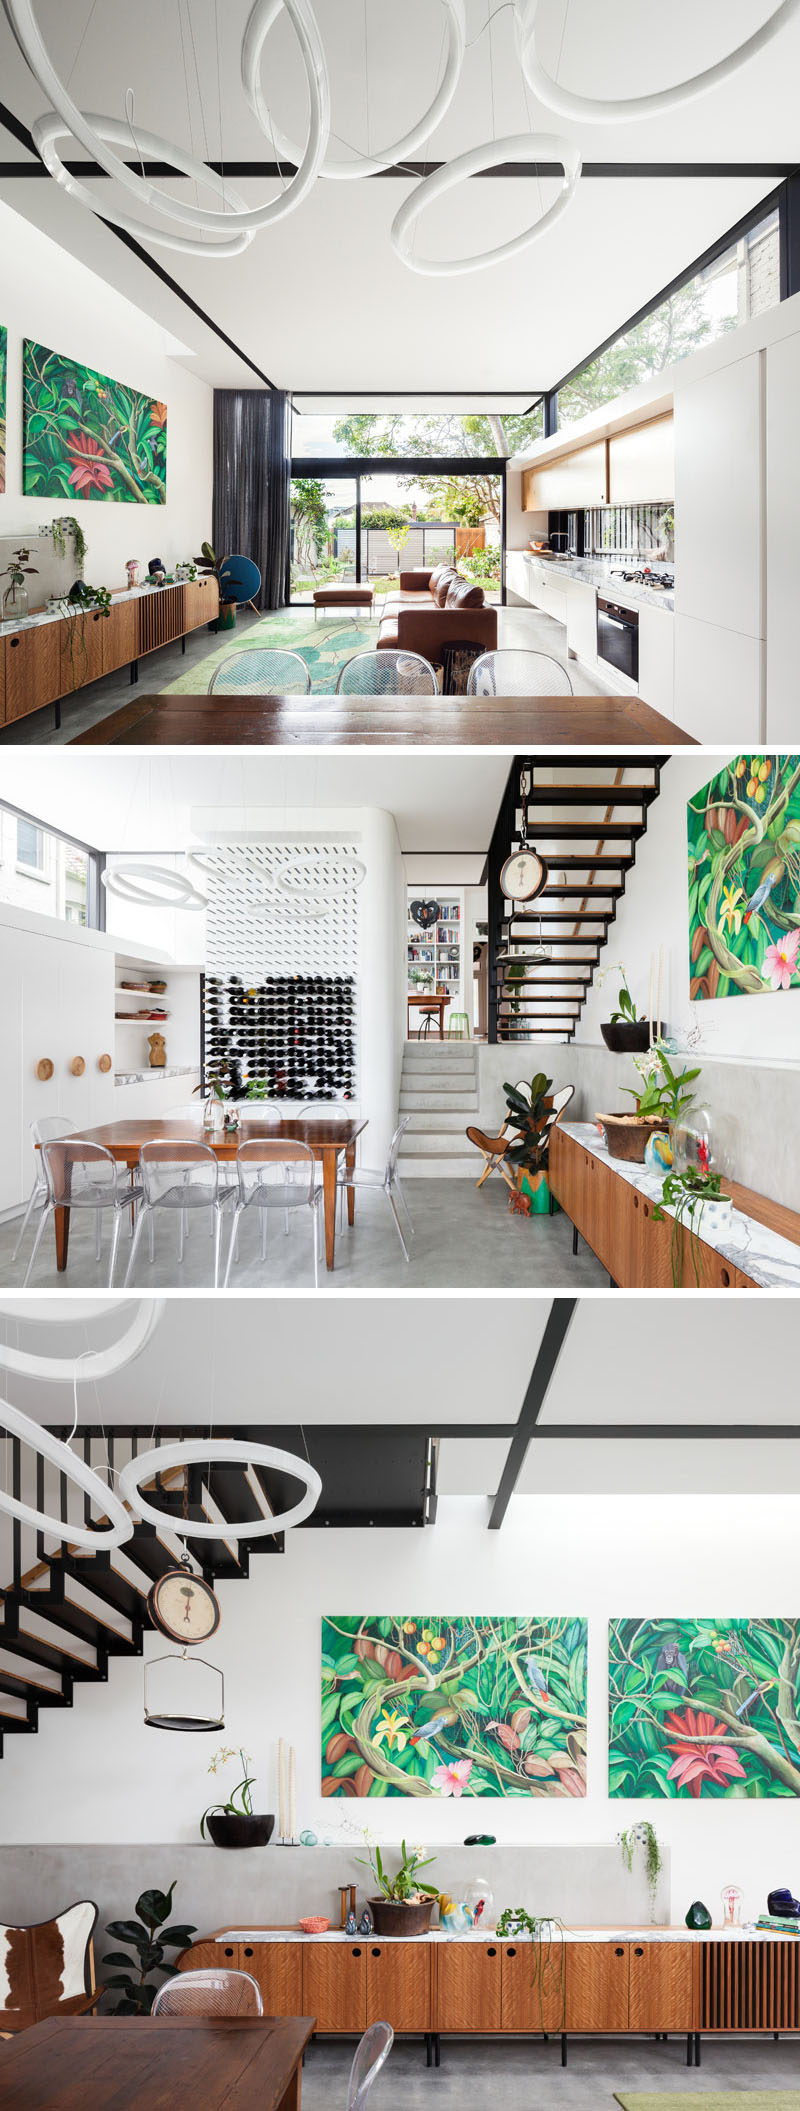 Inside this modern house, the living room, kitchen and dining room share the same space, with the light wood kitchen running alongside one wall. A wall of wine near the dining table and chairs doubles as a piece of art, while black beams break up the all white ceiling, and match the stairs at the end of the room.